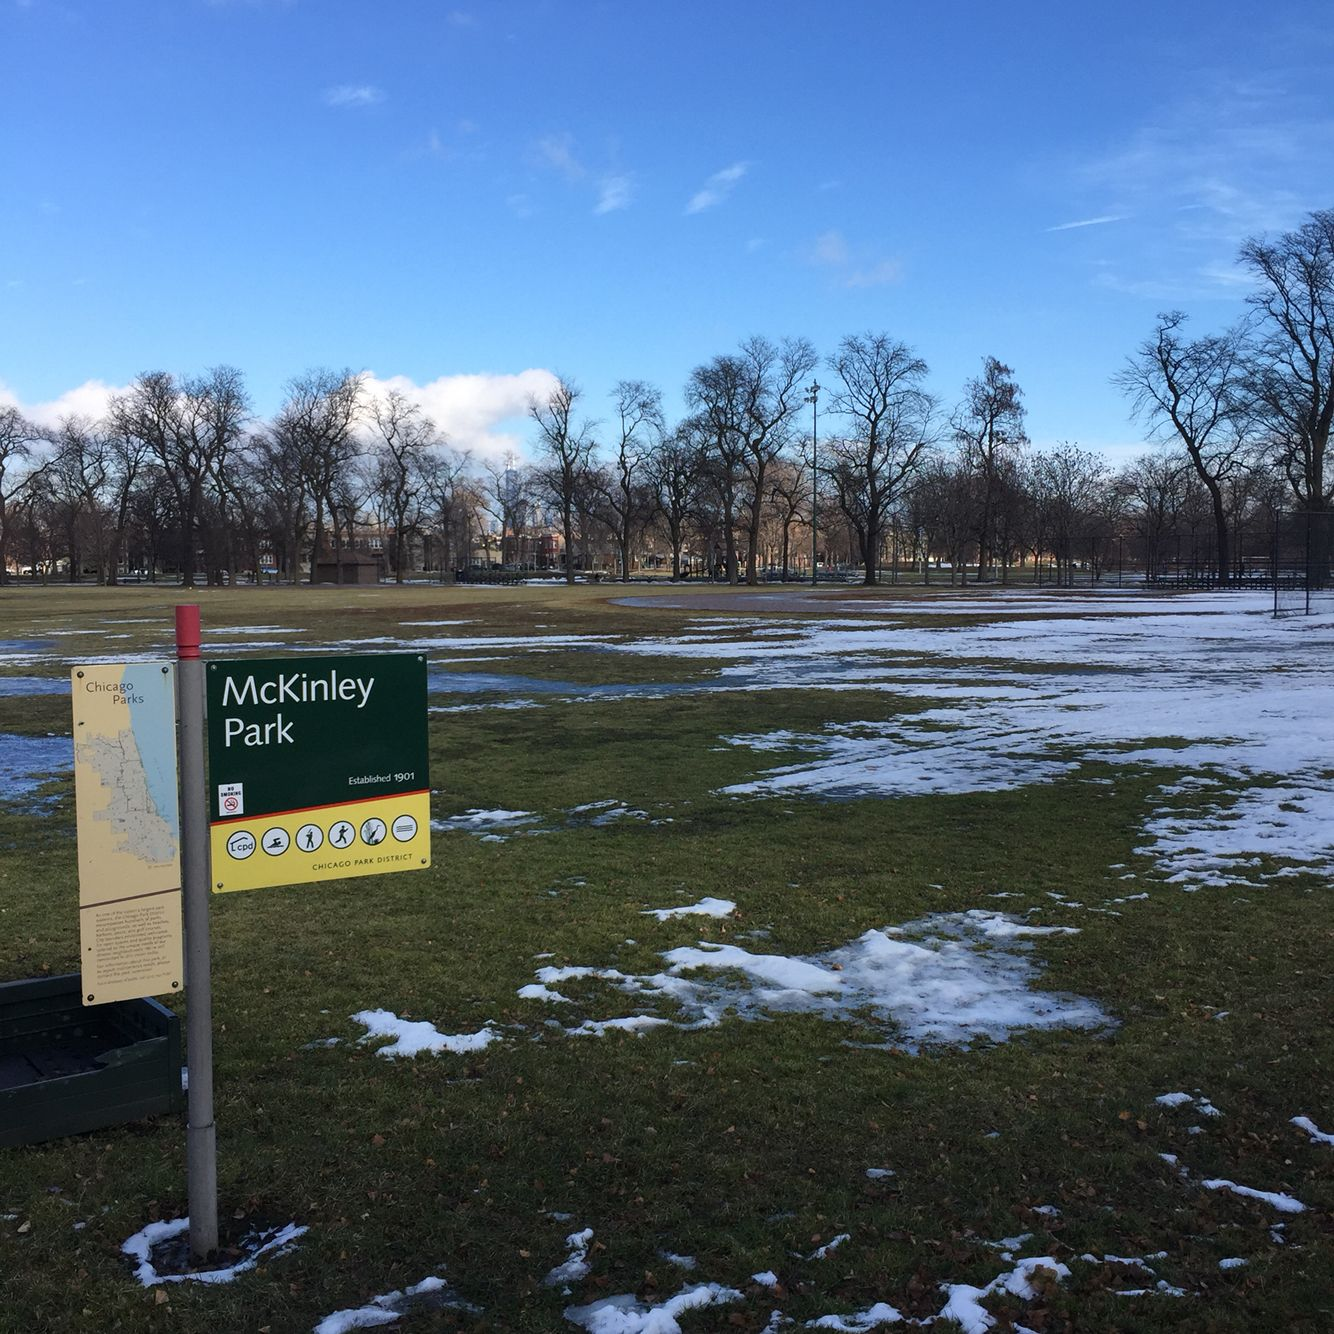 19/365 #mckinleypark is finally thawing out! Can't wait for spring in #Chicago #project365 #19